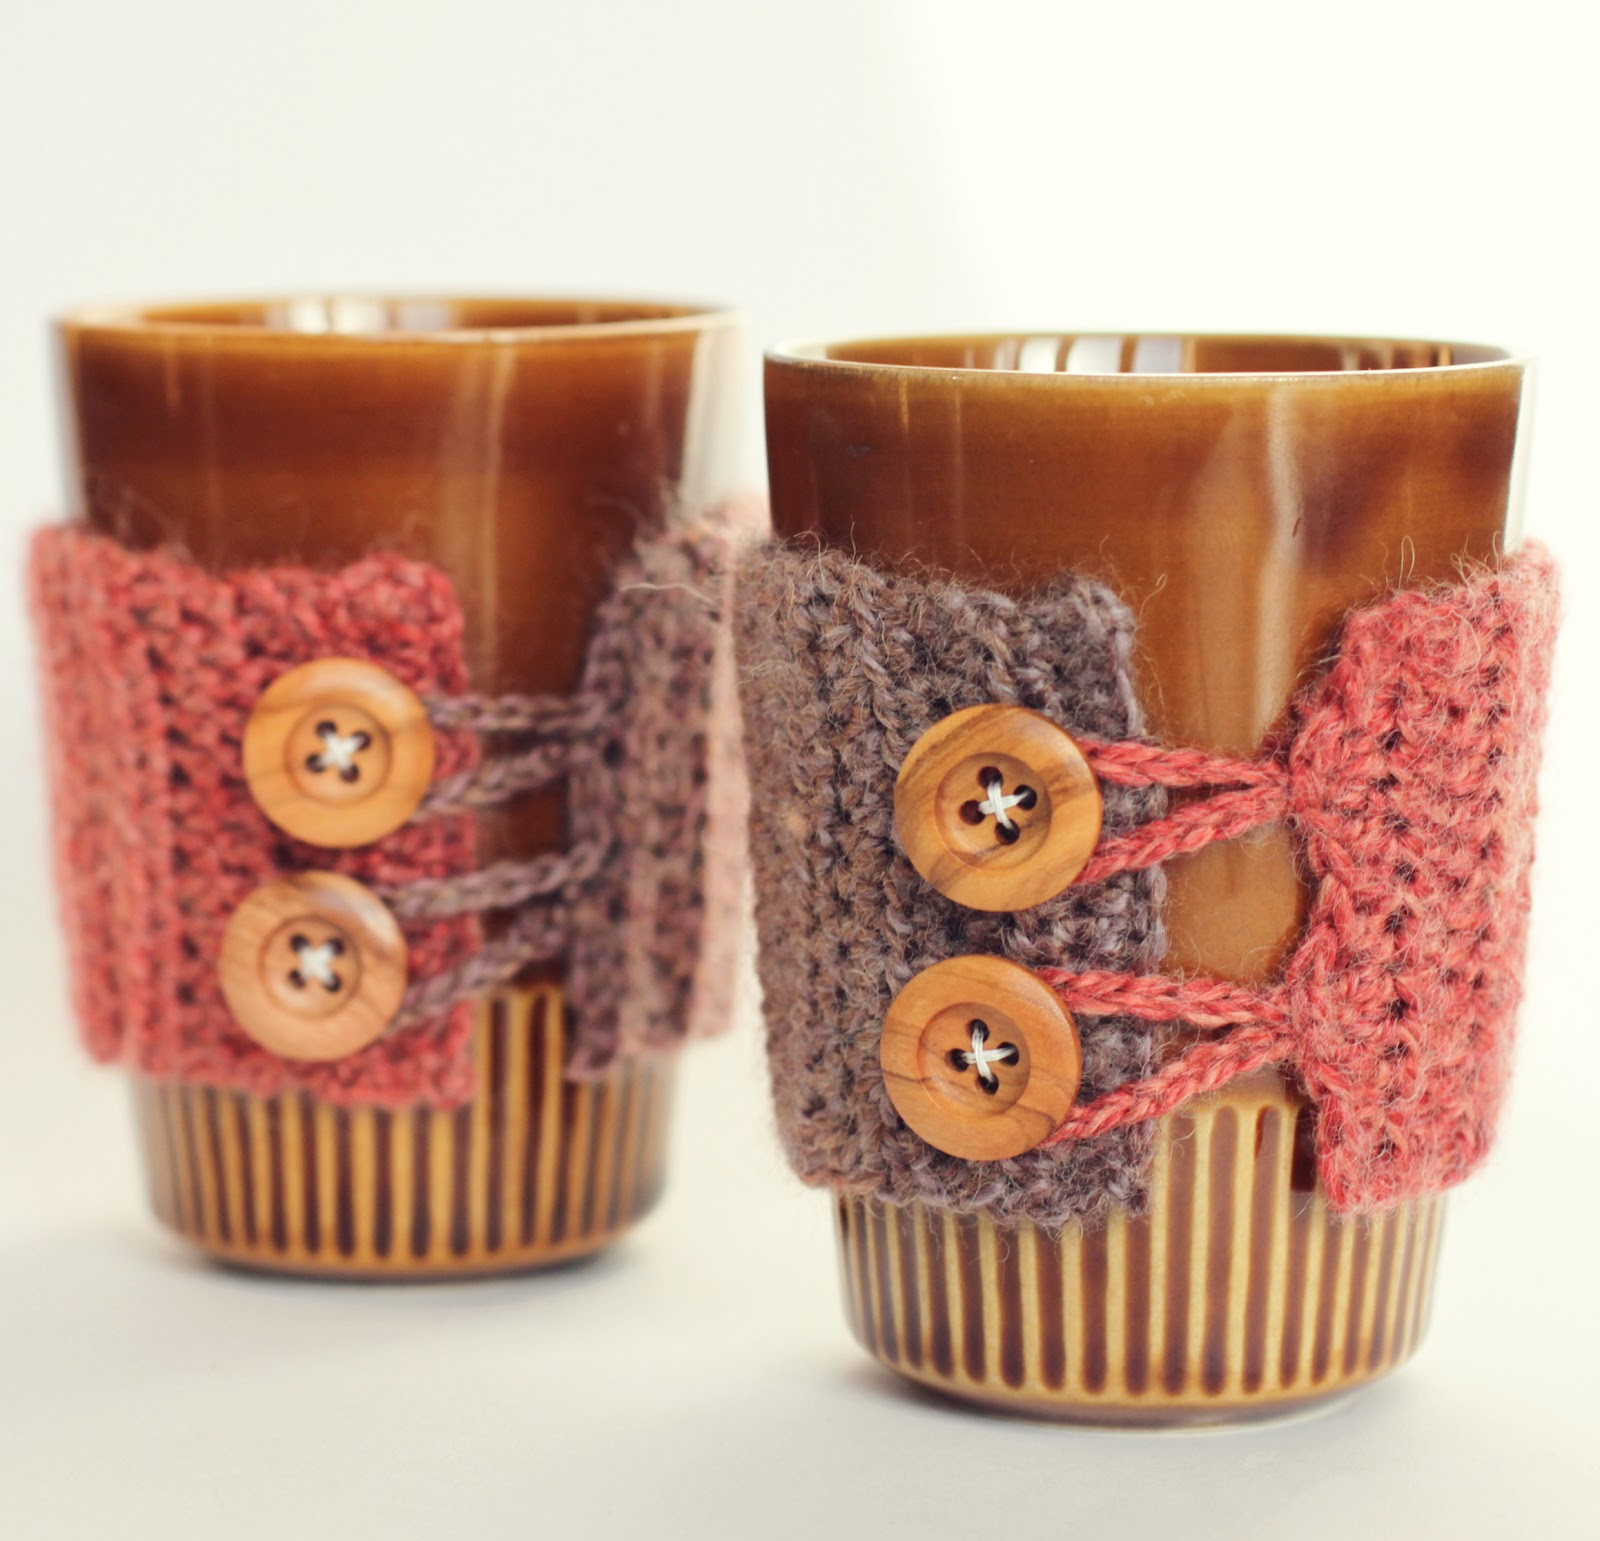 Crochet Coffee Cup Cozy Lovely L♥valizious Mug Cozy Tutorial Of Crochet Coffee Cup Cozy Awesome Crochet Coffee Cozy Amy Latta Creations